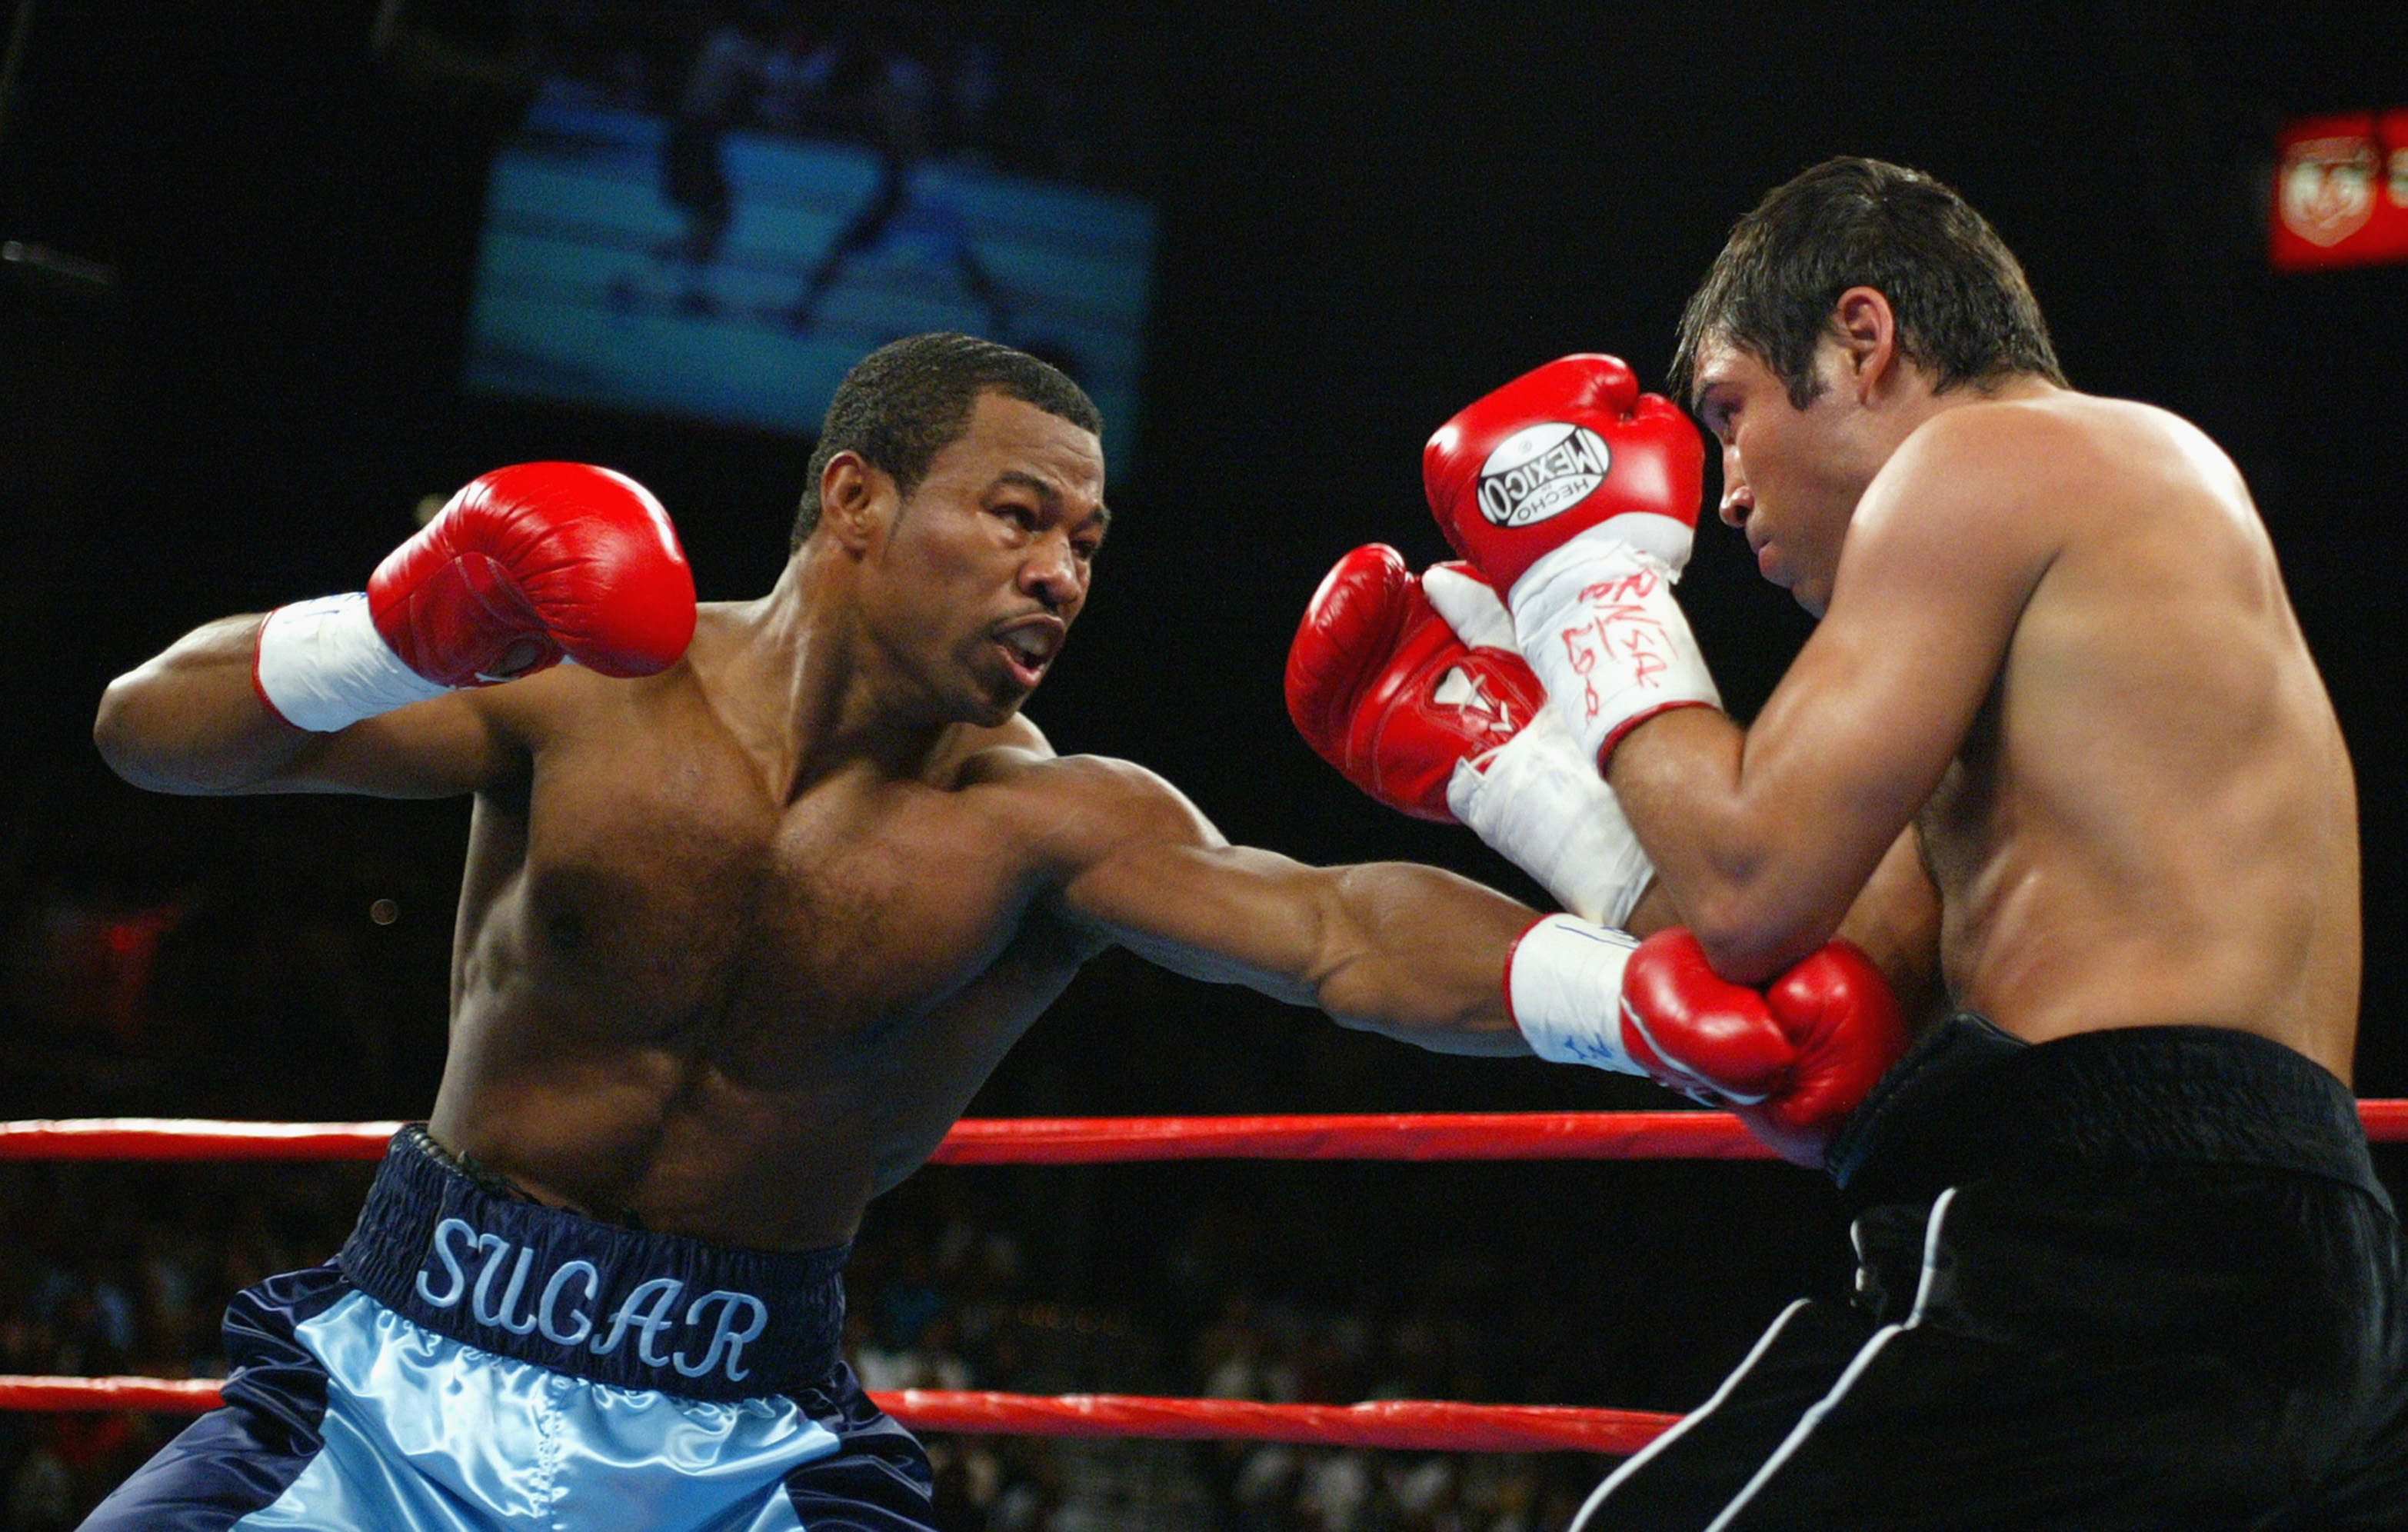 LAS VEGAS - SEPTEMBER 13: Shane Mosley throws a left-hand punch to the body of Oscar De La Hoya on September 13, 2003 at the MGM Grand in Las Vegas, Nevada. Mosley defeated De La Hoya by unanimous decision. (Photo by Al Bello/Getty Images)